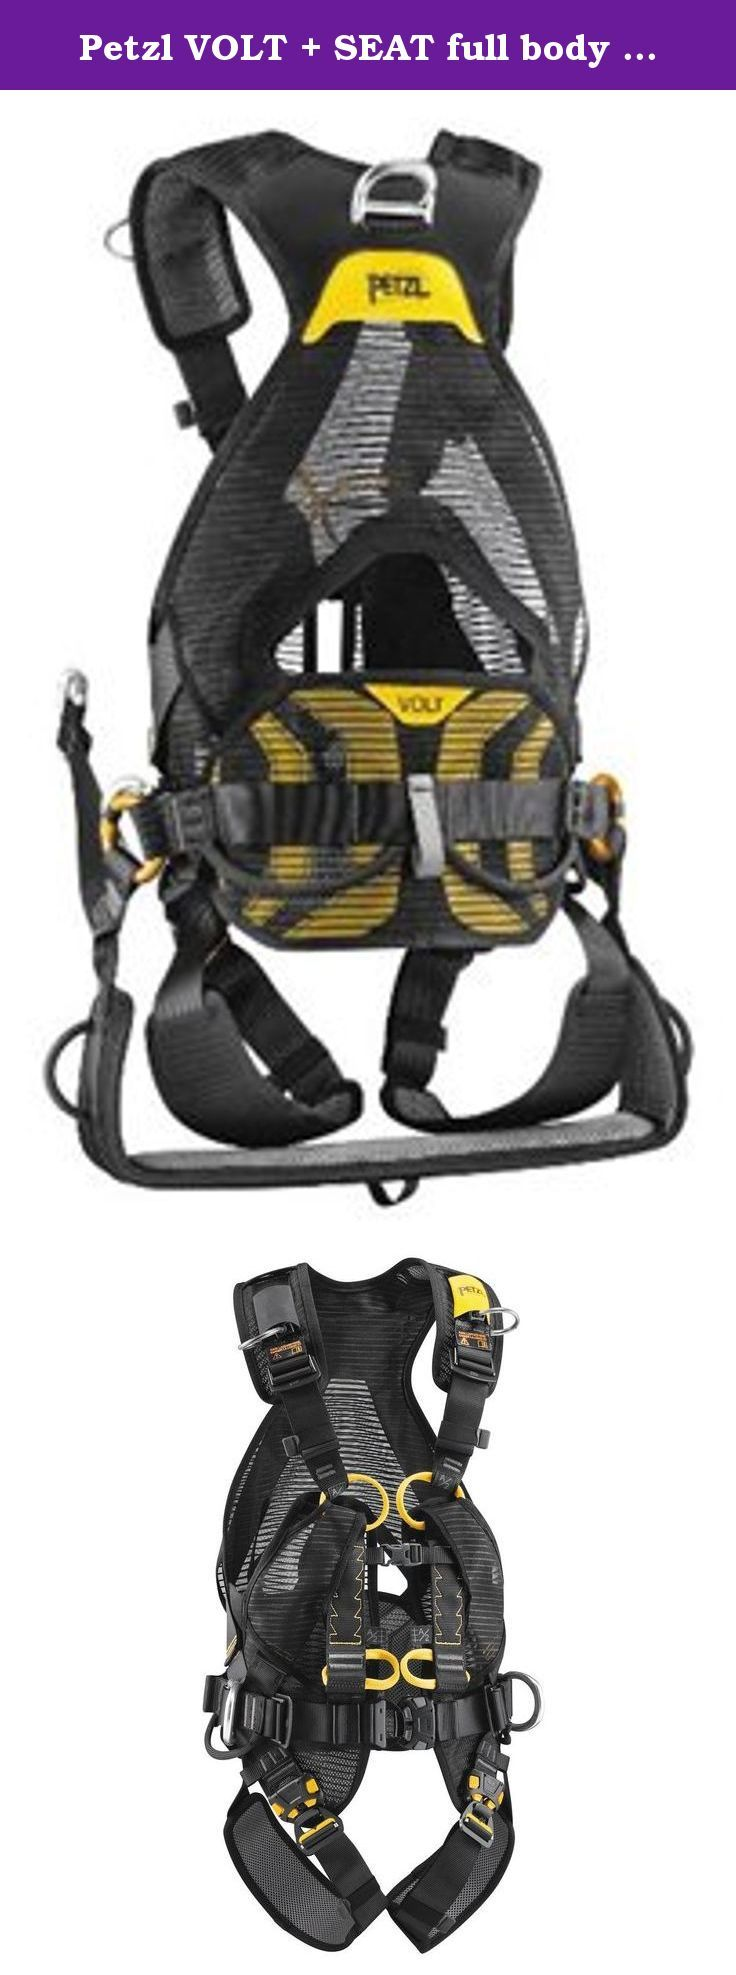 Petzl VOLT + SEAT full body harness with OXAN TRIACTLOCK